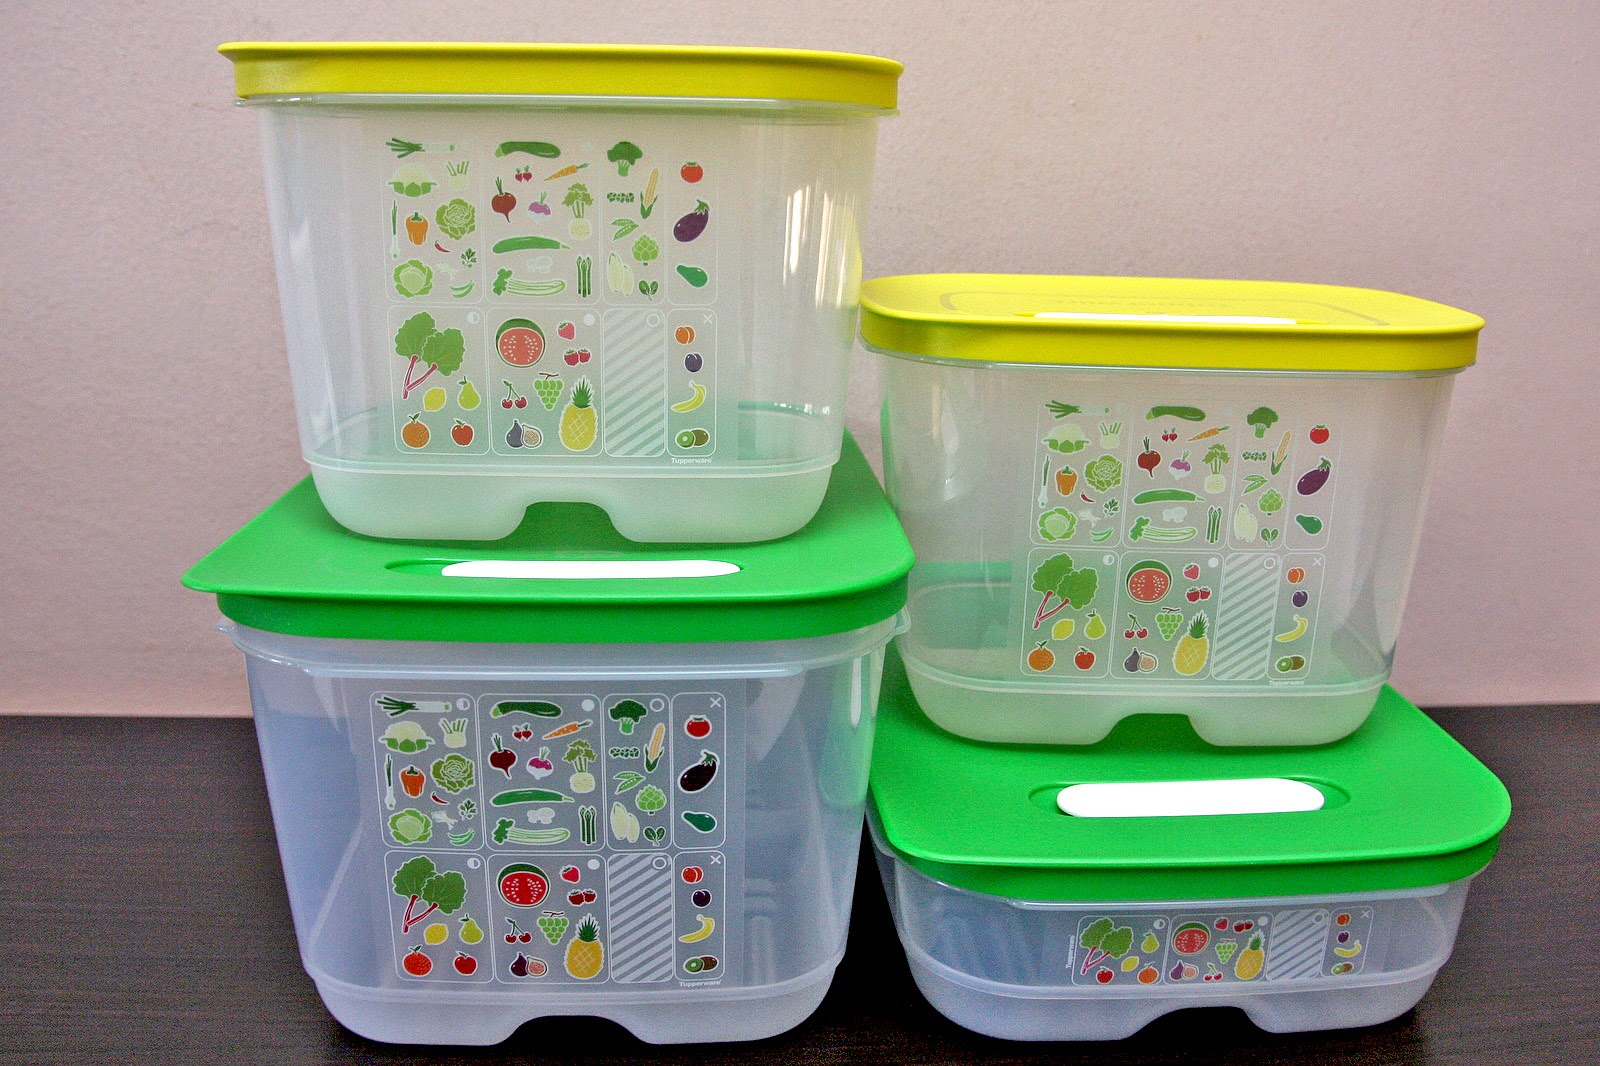 Tupperware VentSmart Fridge Storage Containers NanoNature Water